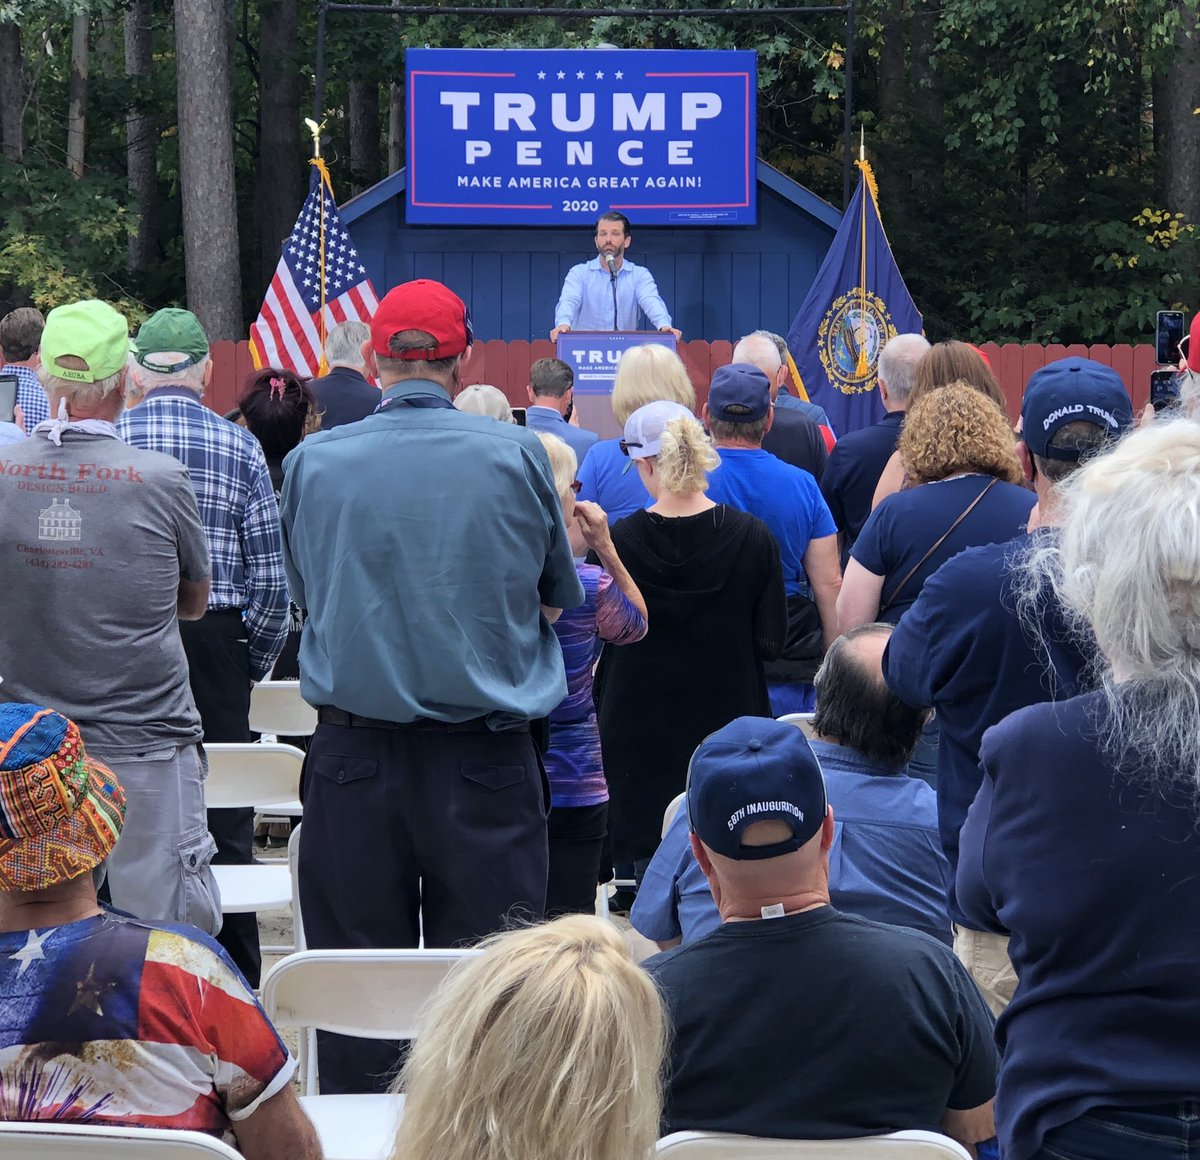 Joe Biden couldn't get a crowd of 10 people in a densely populated area.  @DonaldJTrumpJr on the other hand...Thursday afternoon in the North Country and a PACKED barn!  The Granite State is buzzing! 🔥🔥 #LeadRight #FITN #nhpolitics https://t.co/X9OM5UJLK0